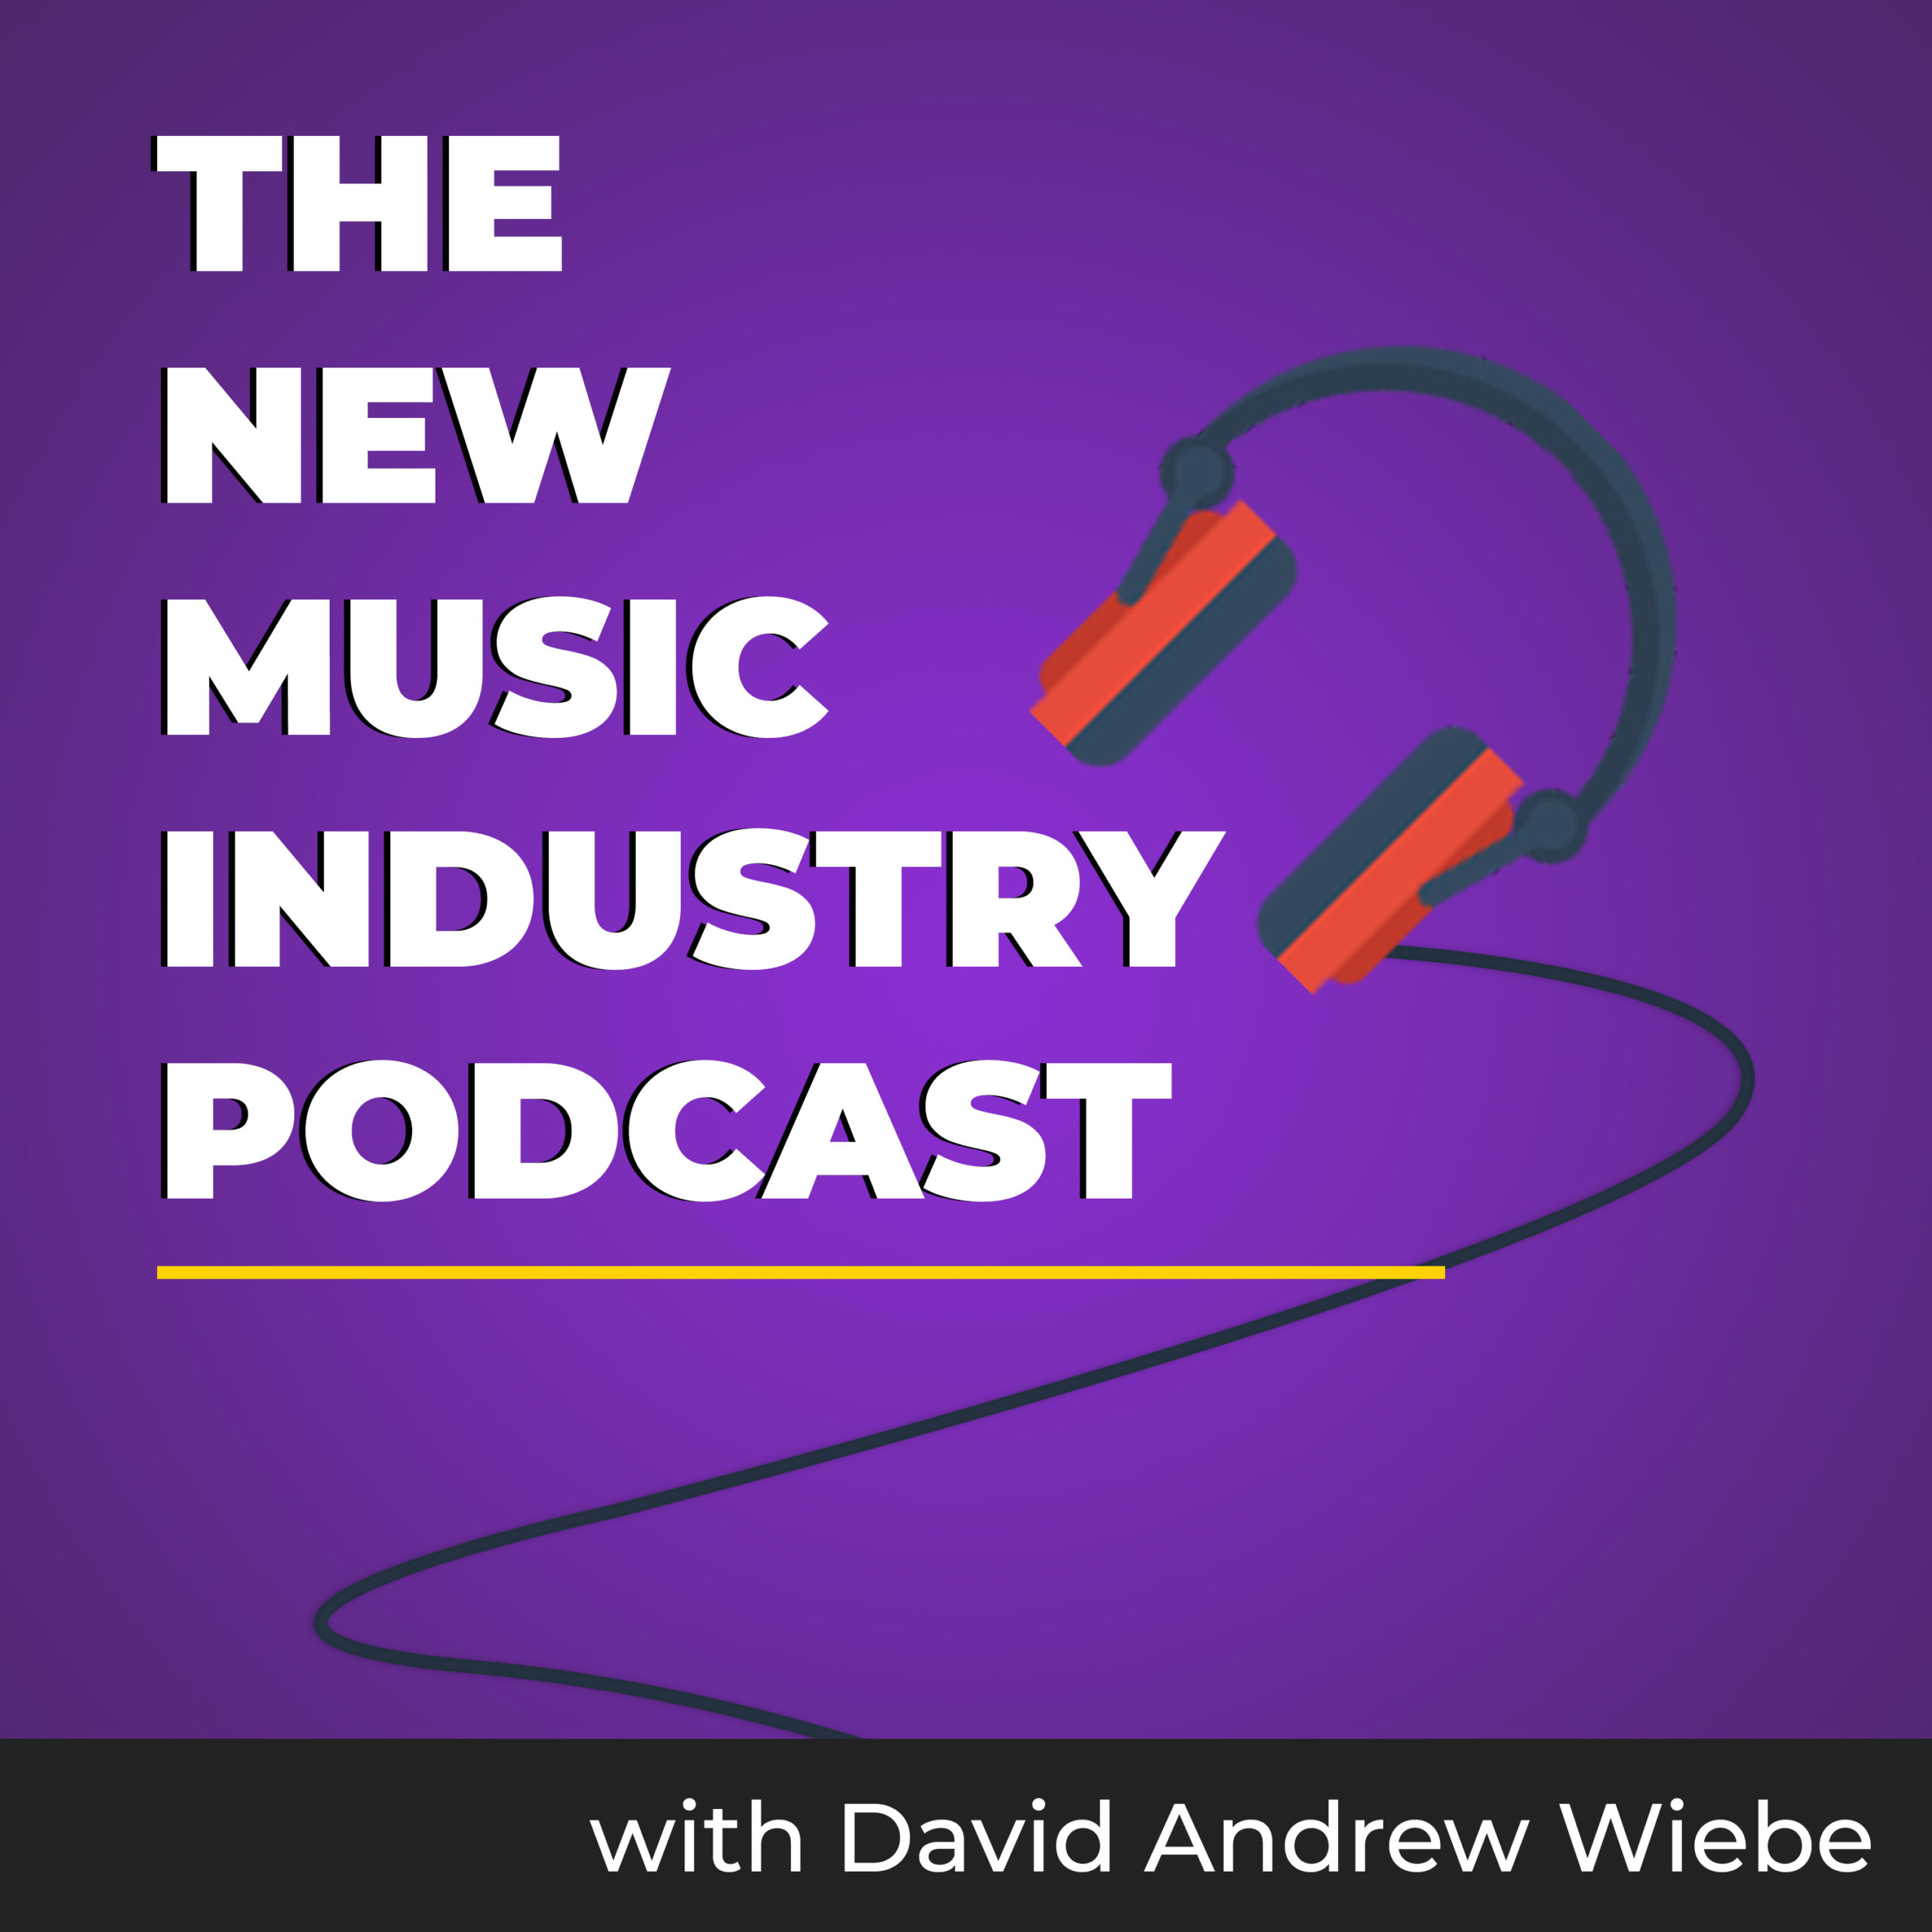 The New Music Industry Podcast with David Andrew Wiebe